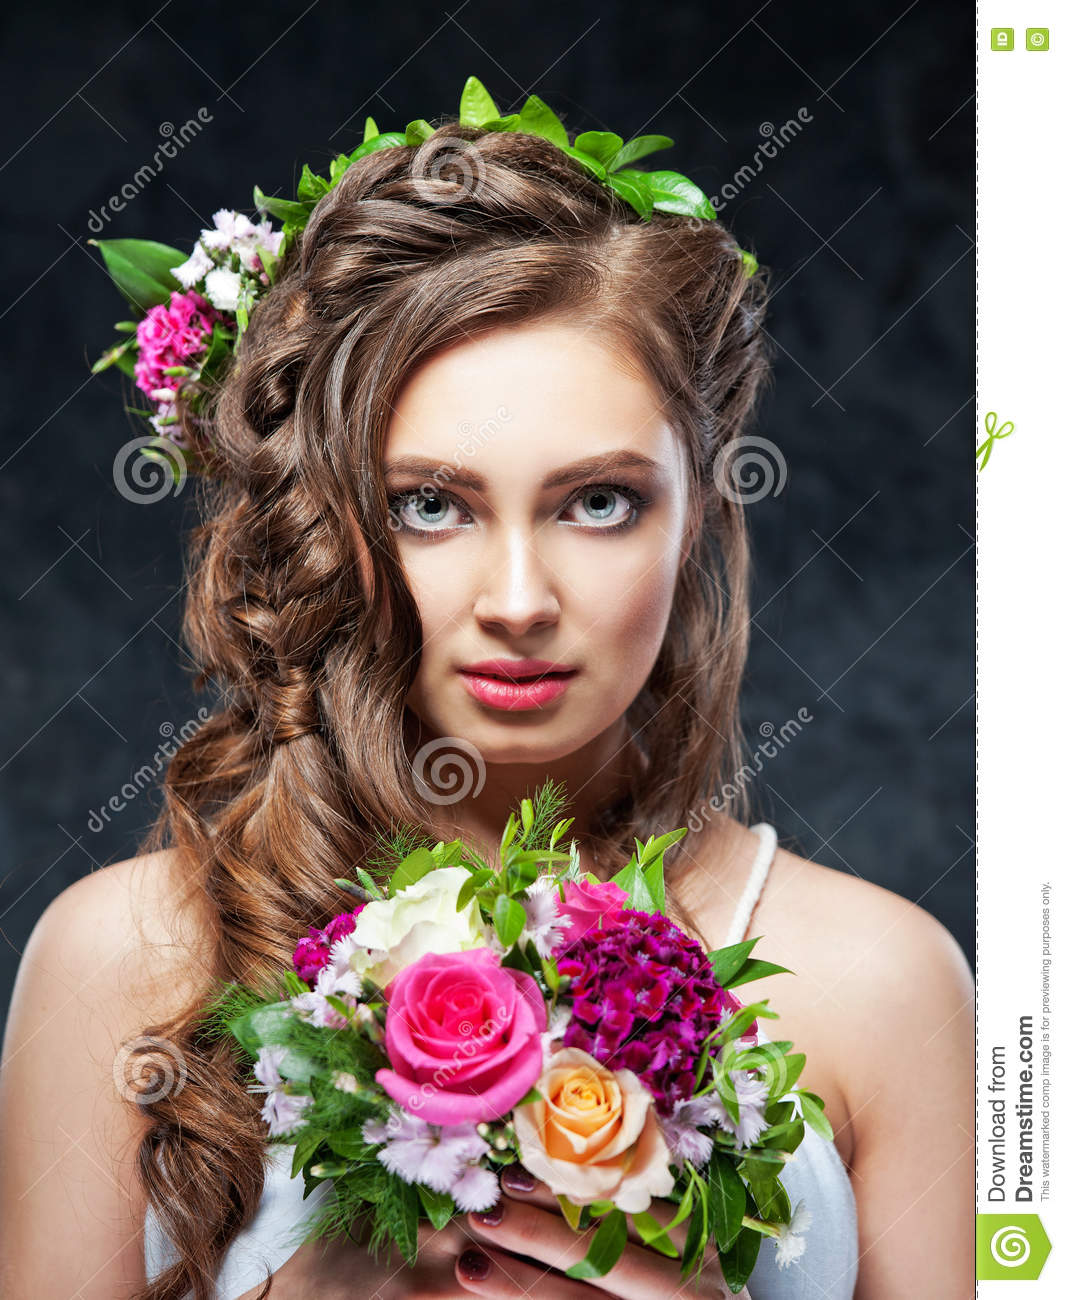 Beautiful Brunette Girl With A Composition Of Flowers Stock Photo